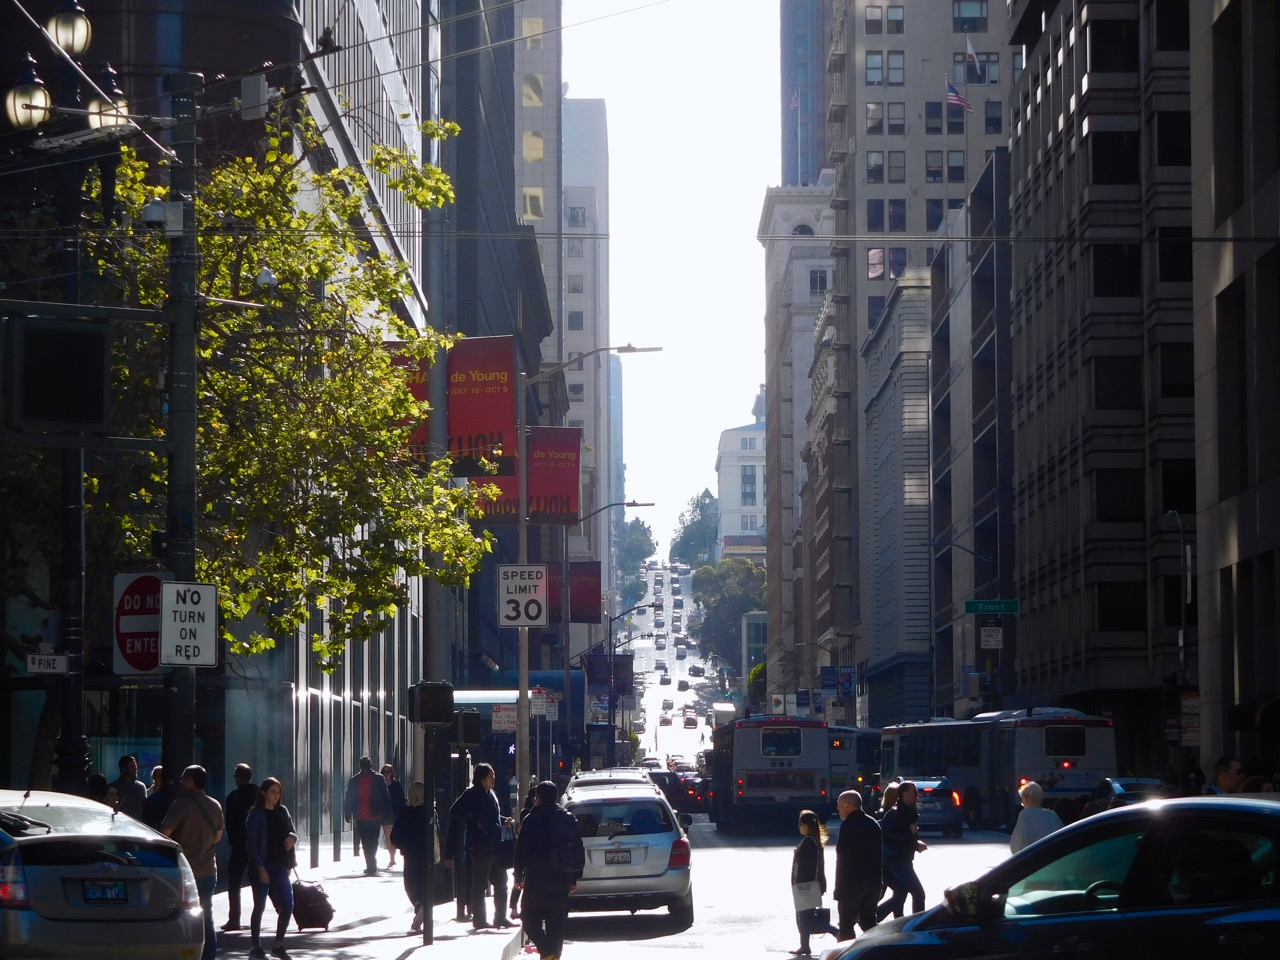 San Francisco Photo Journal - a day in SF (7)